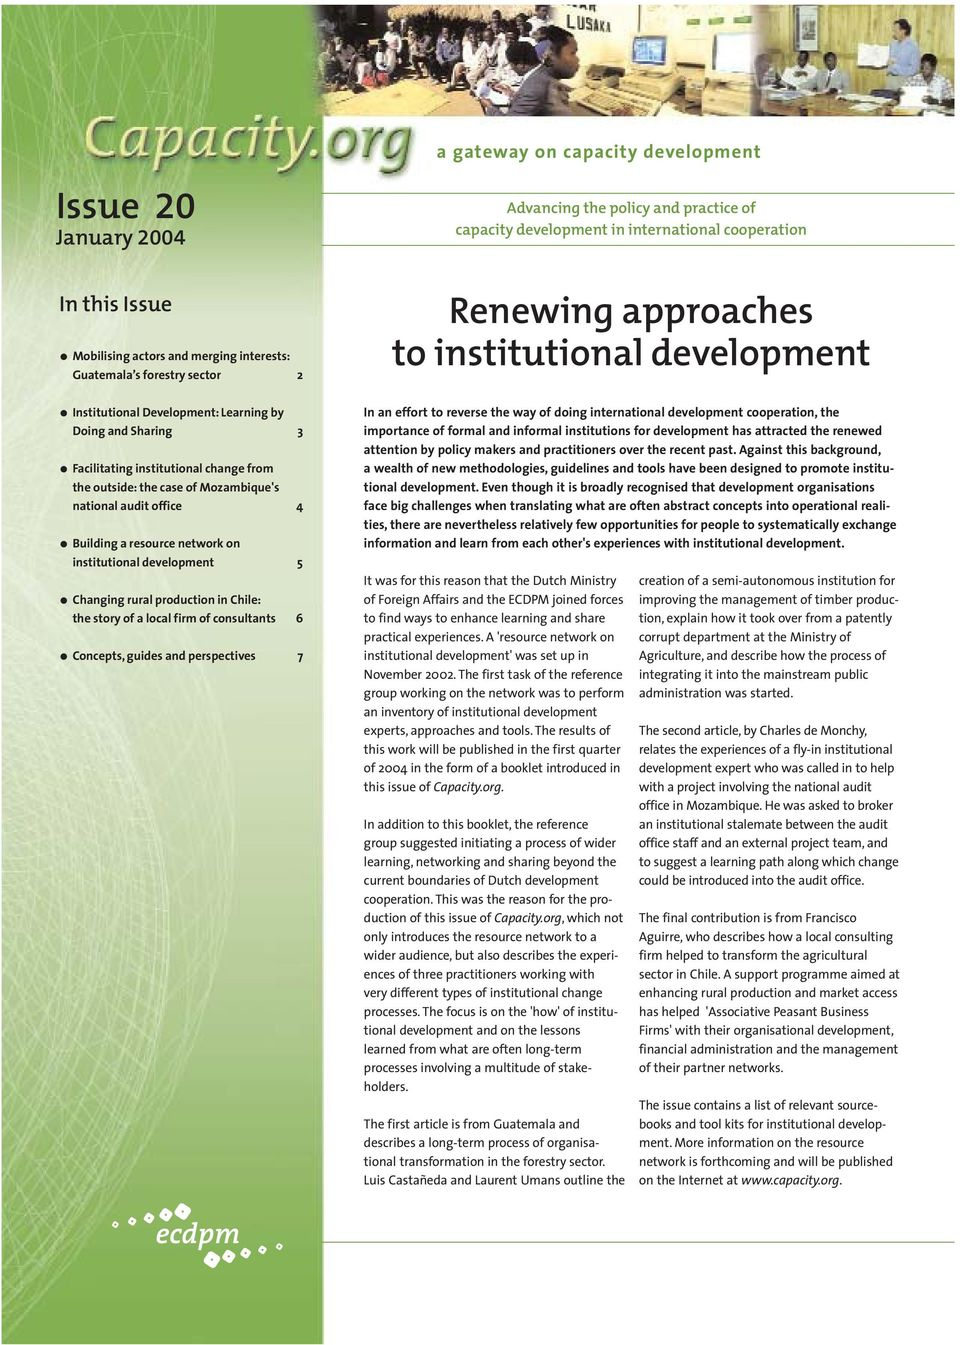 a resource network on institutional development 5 Changing rural production in Chile: the story of a local firm of consultants 6 Concepts, guides and perspectives 7 Renewing approaches to